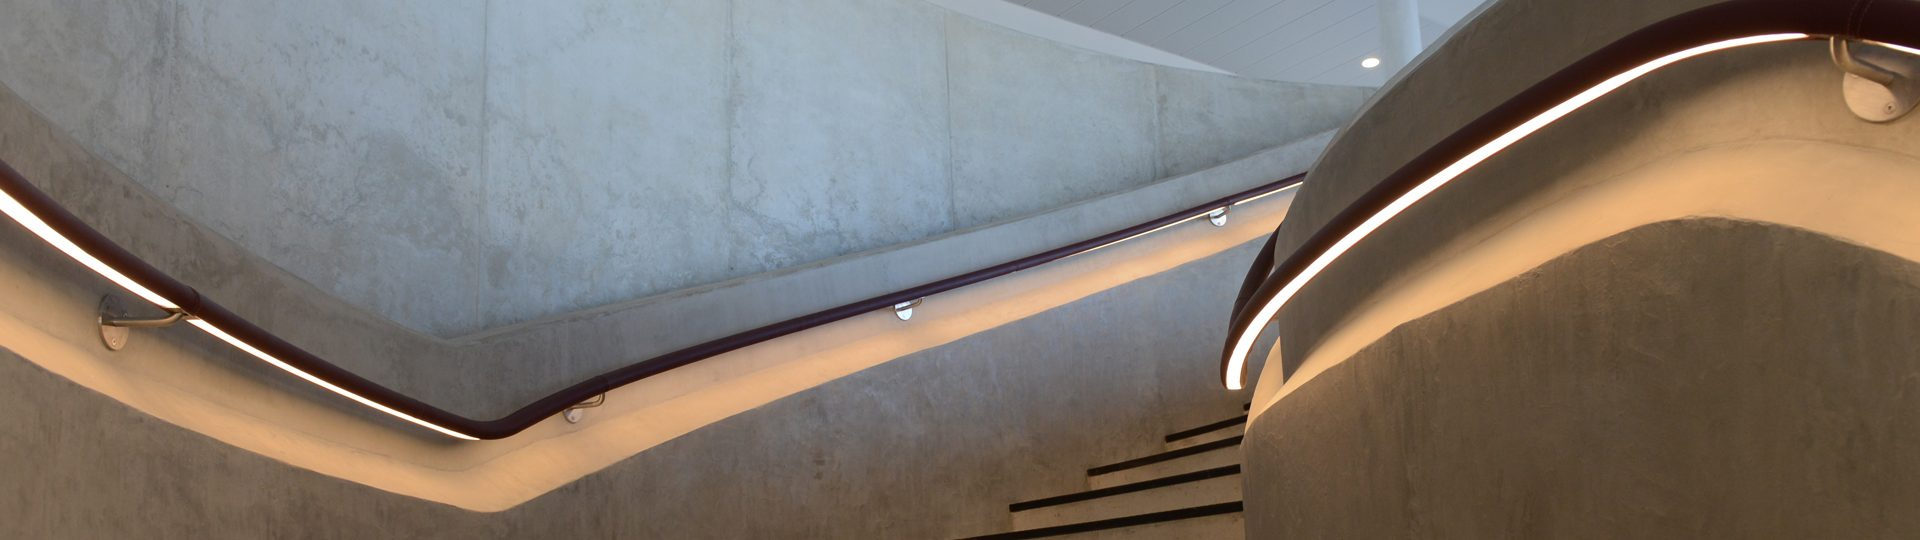 Hiscox York | LED handrail | The Light Lab